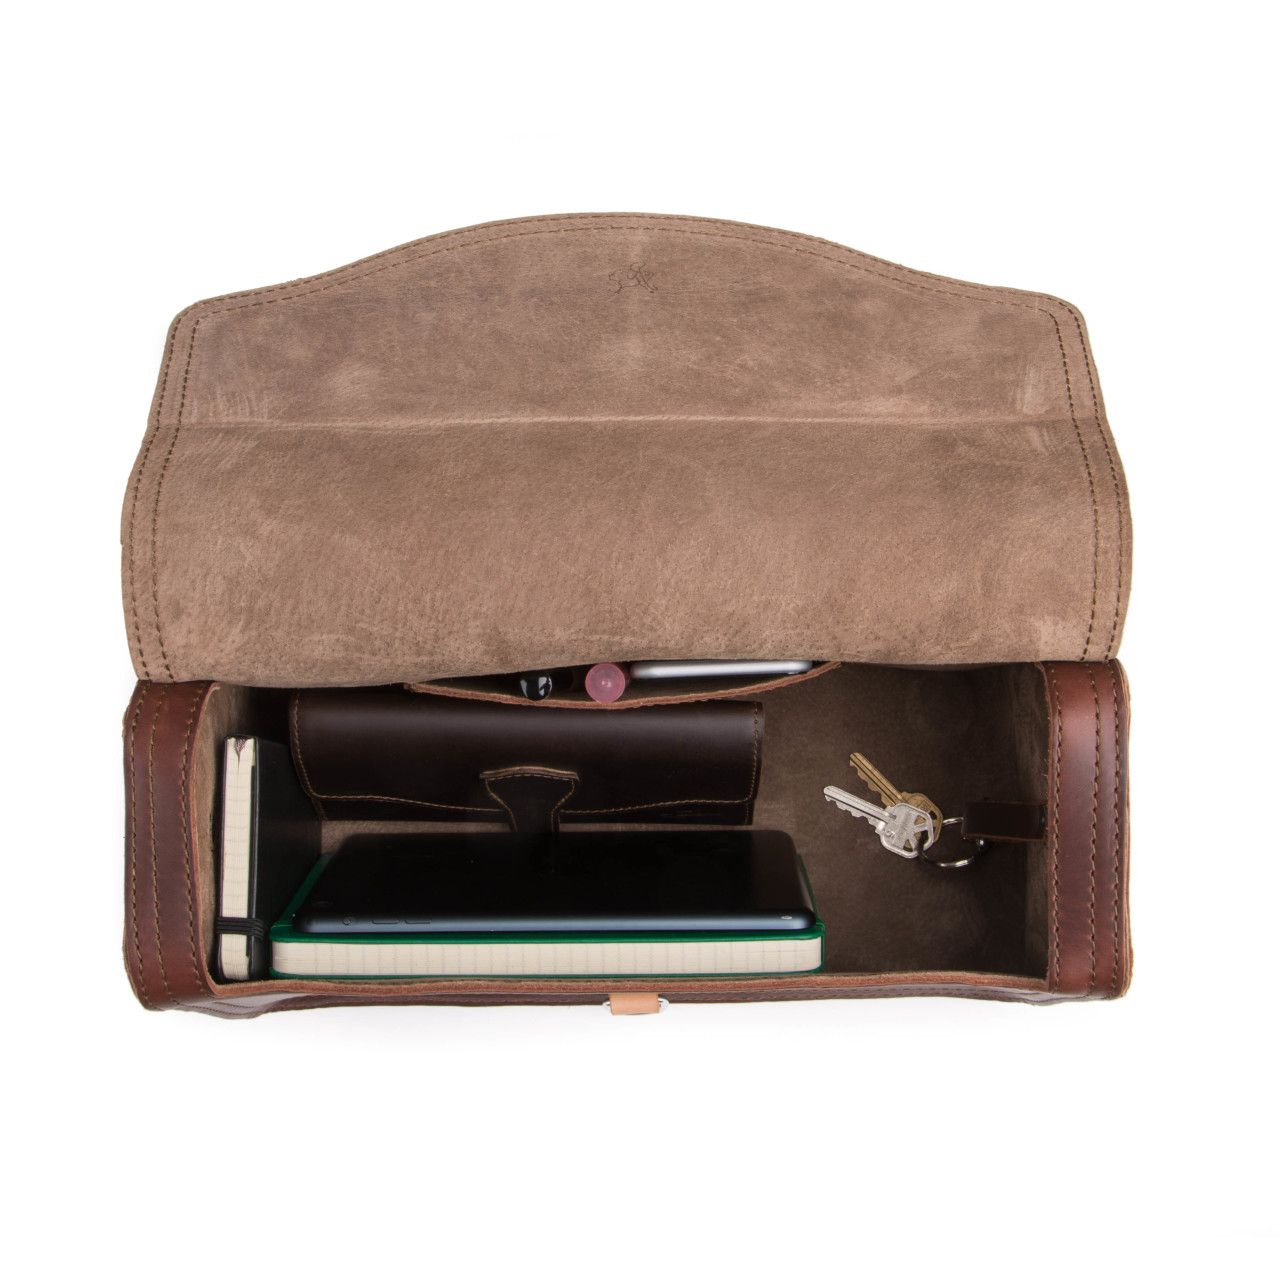 leather satchel purse in chestnut leather with keys and wallet inside